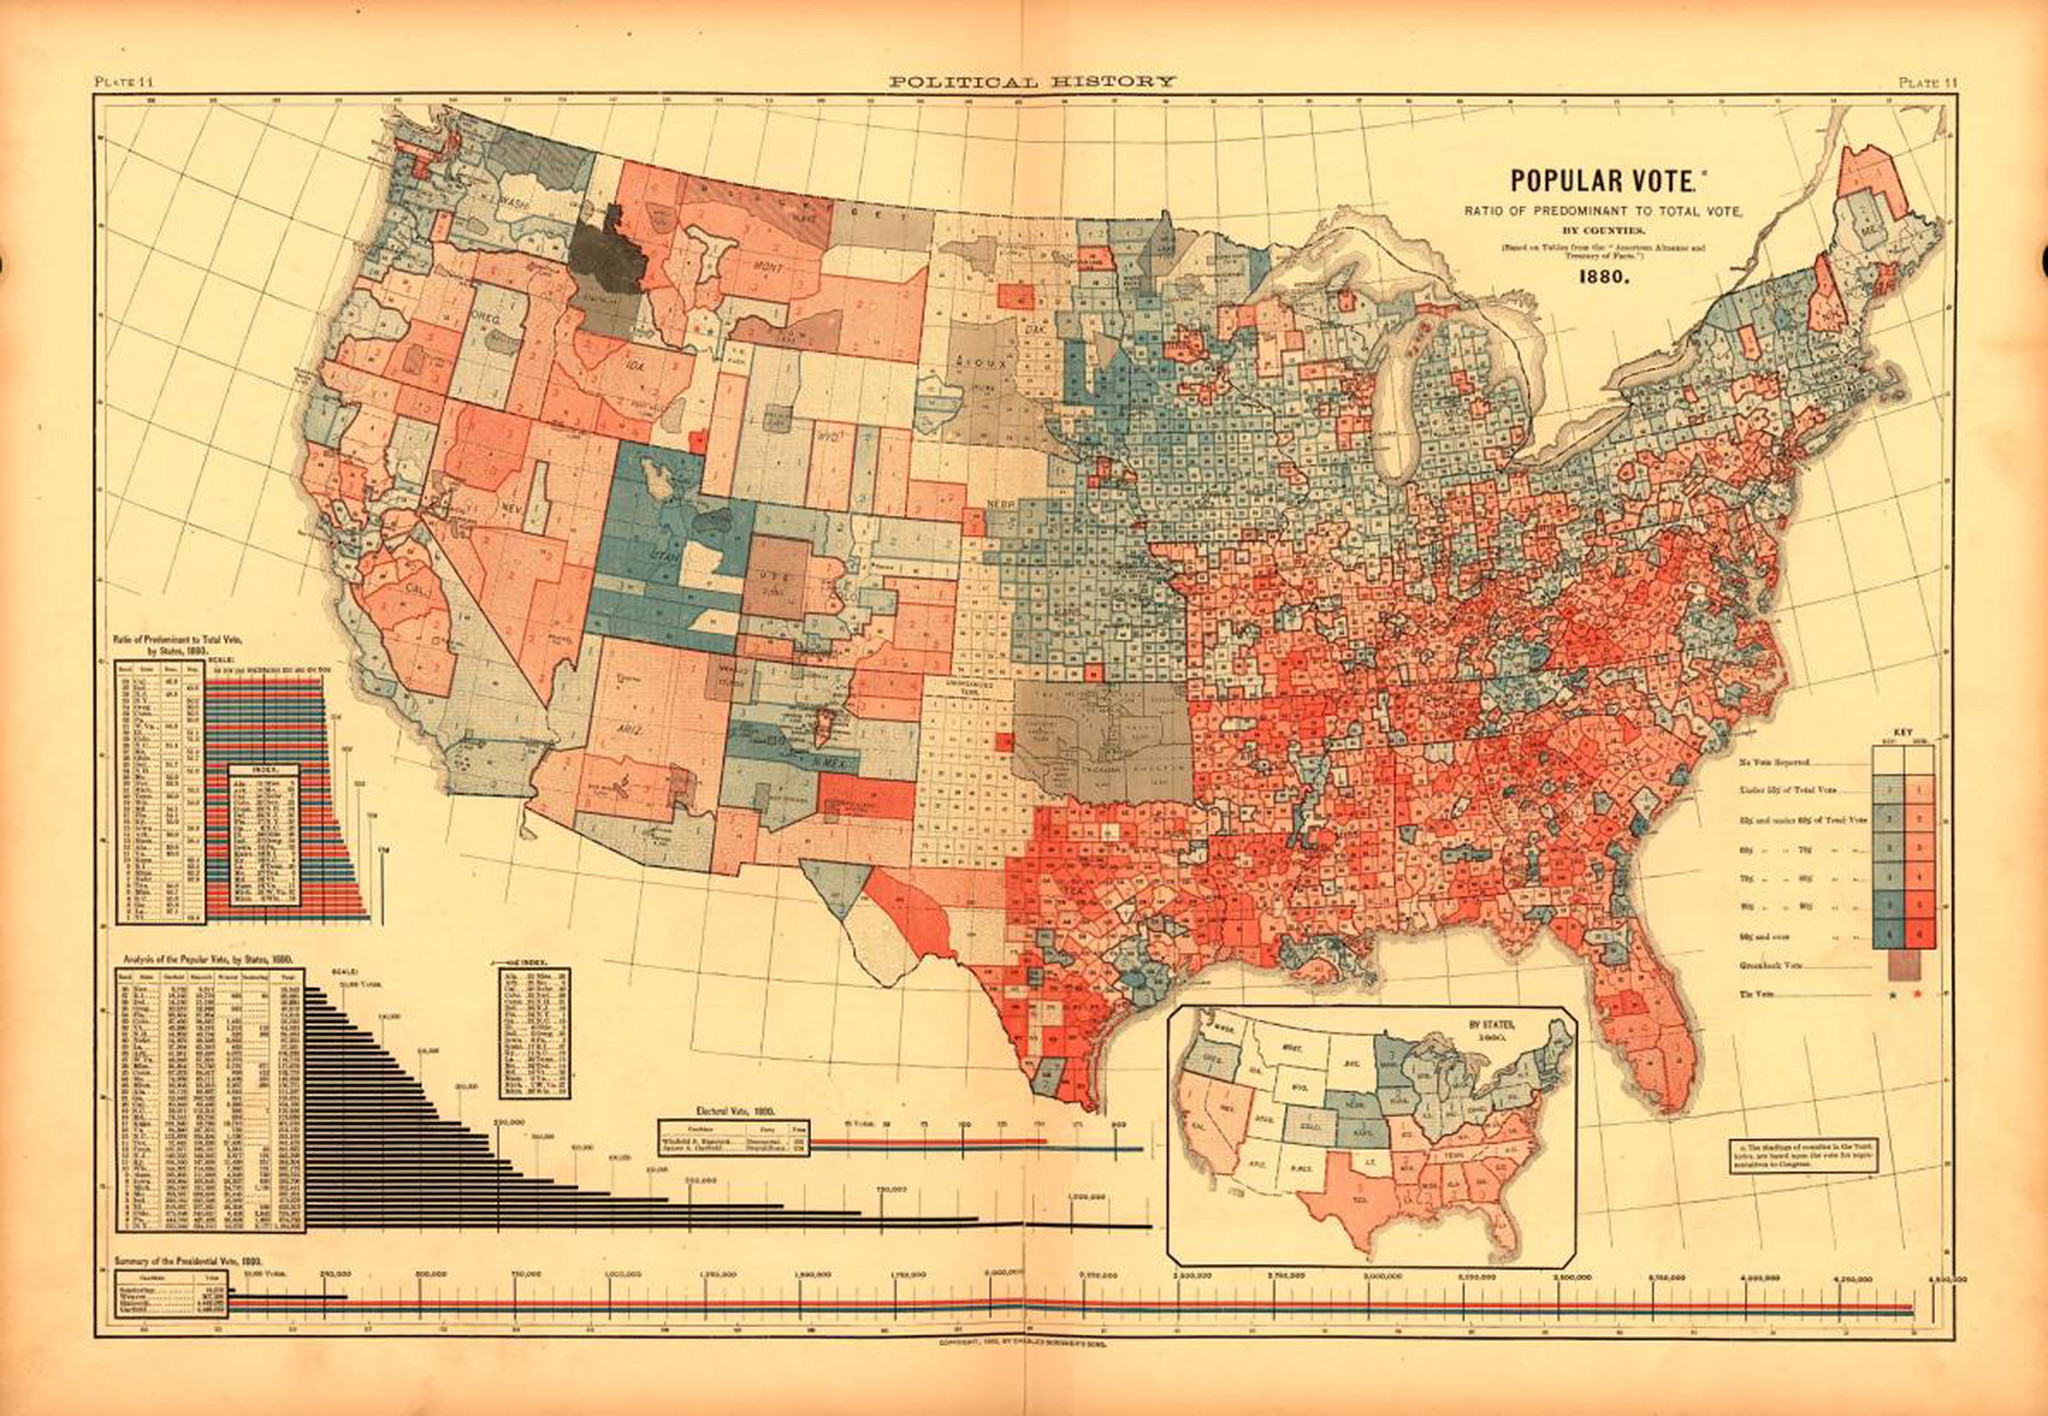 the popular vote of 1880s presidential election as seen on the oldest known us